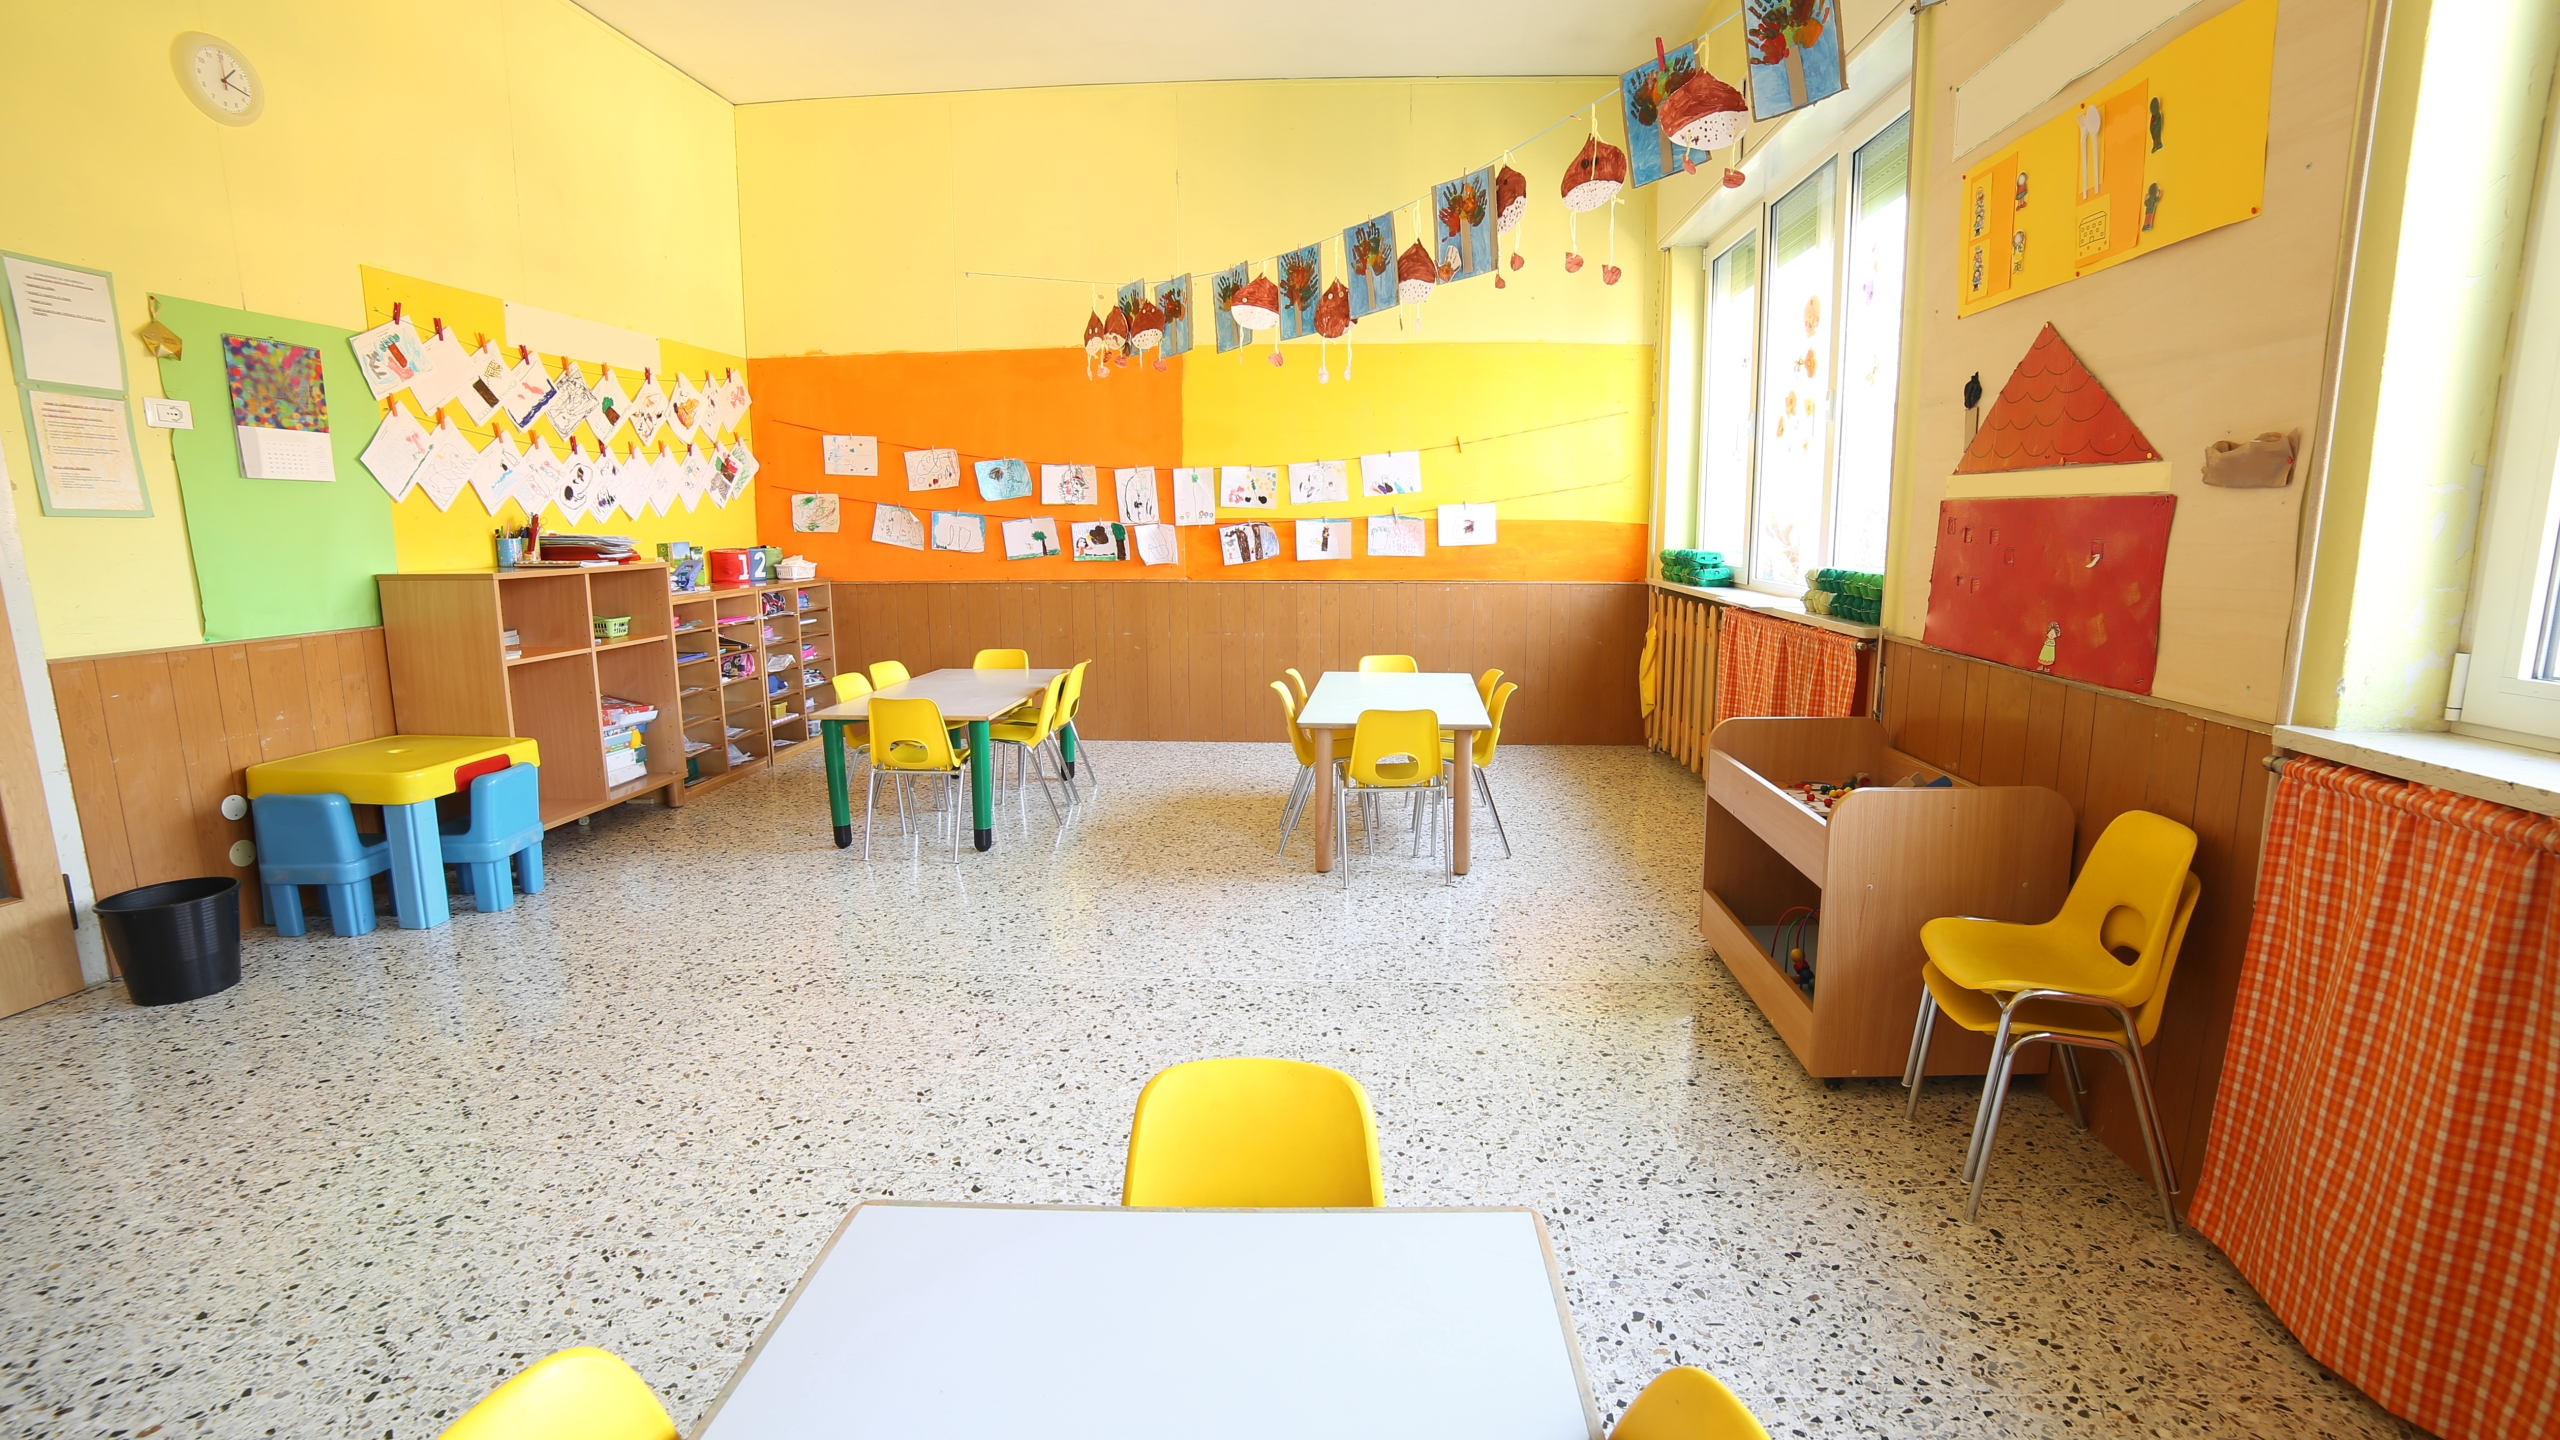 classroom of a day care center without children and teacher